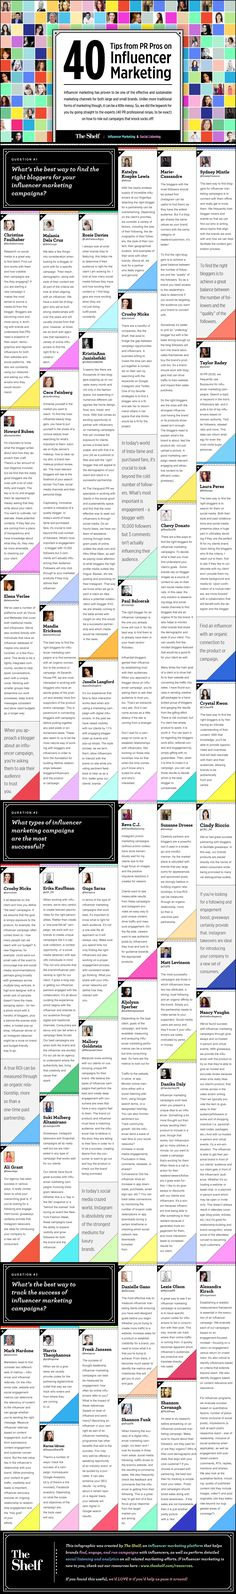 40 Expert opinions on running influencer marketing campaigns [Infographic]